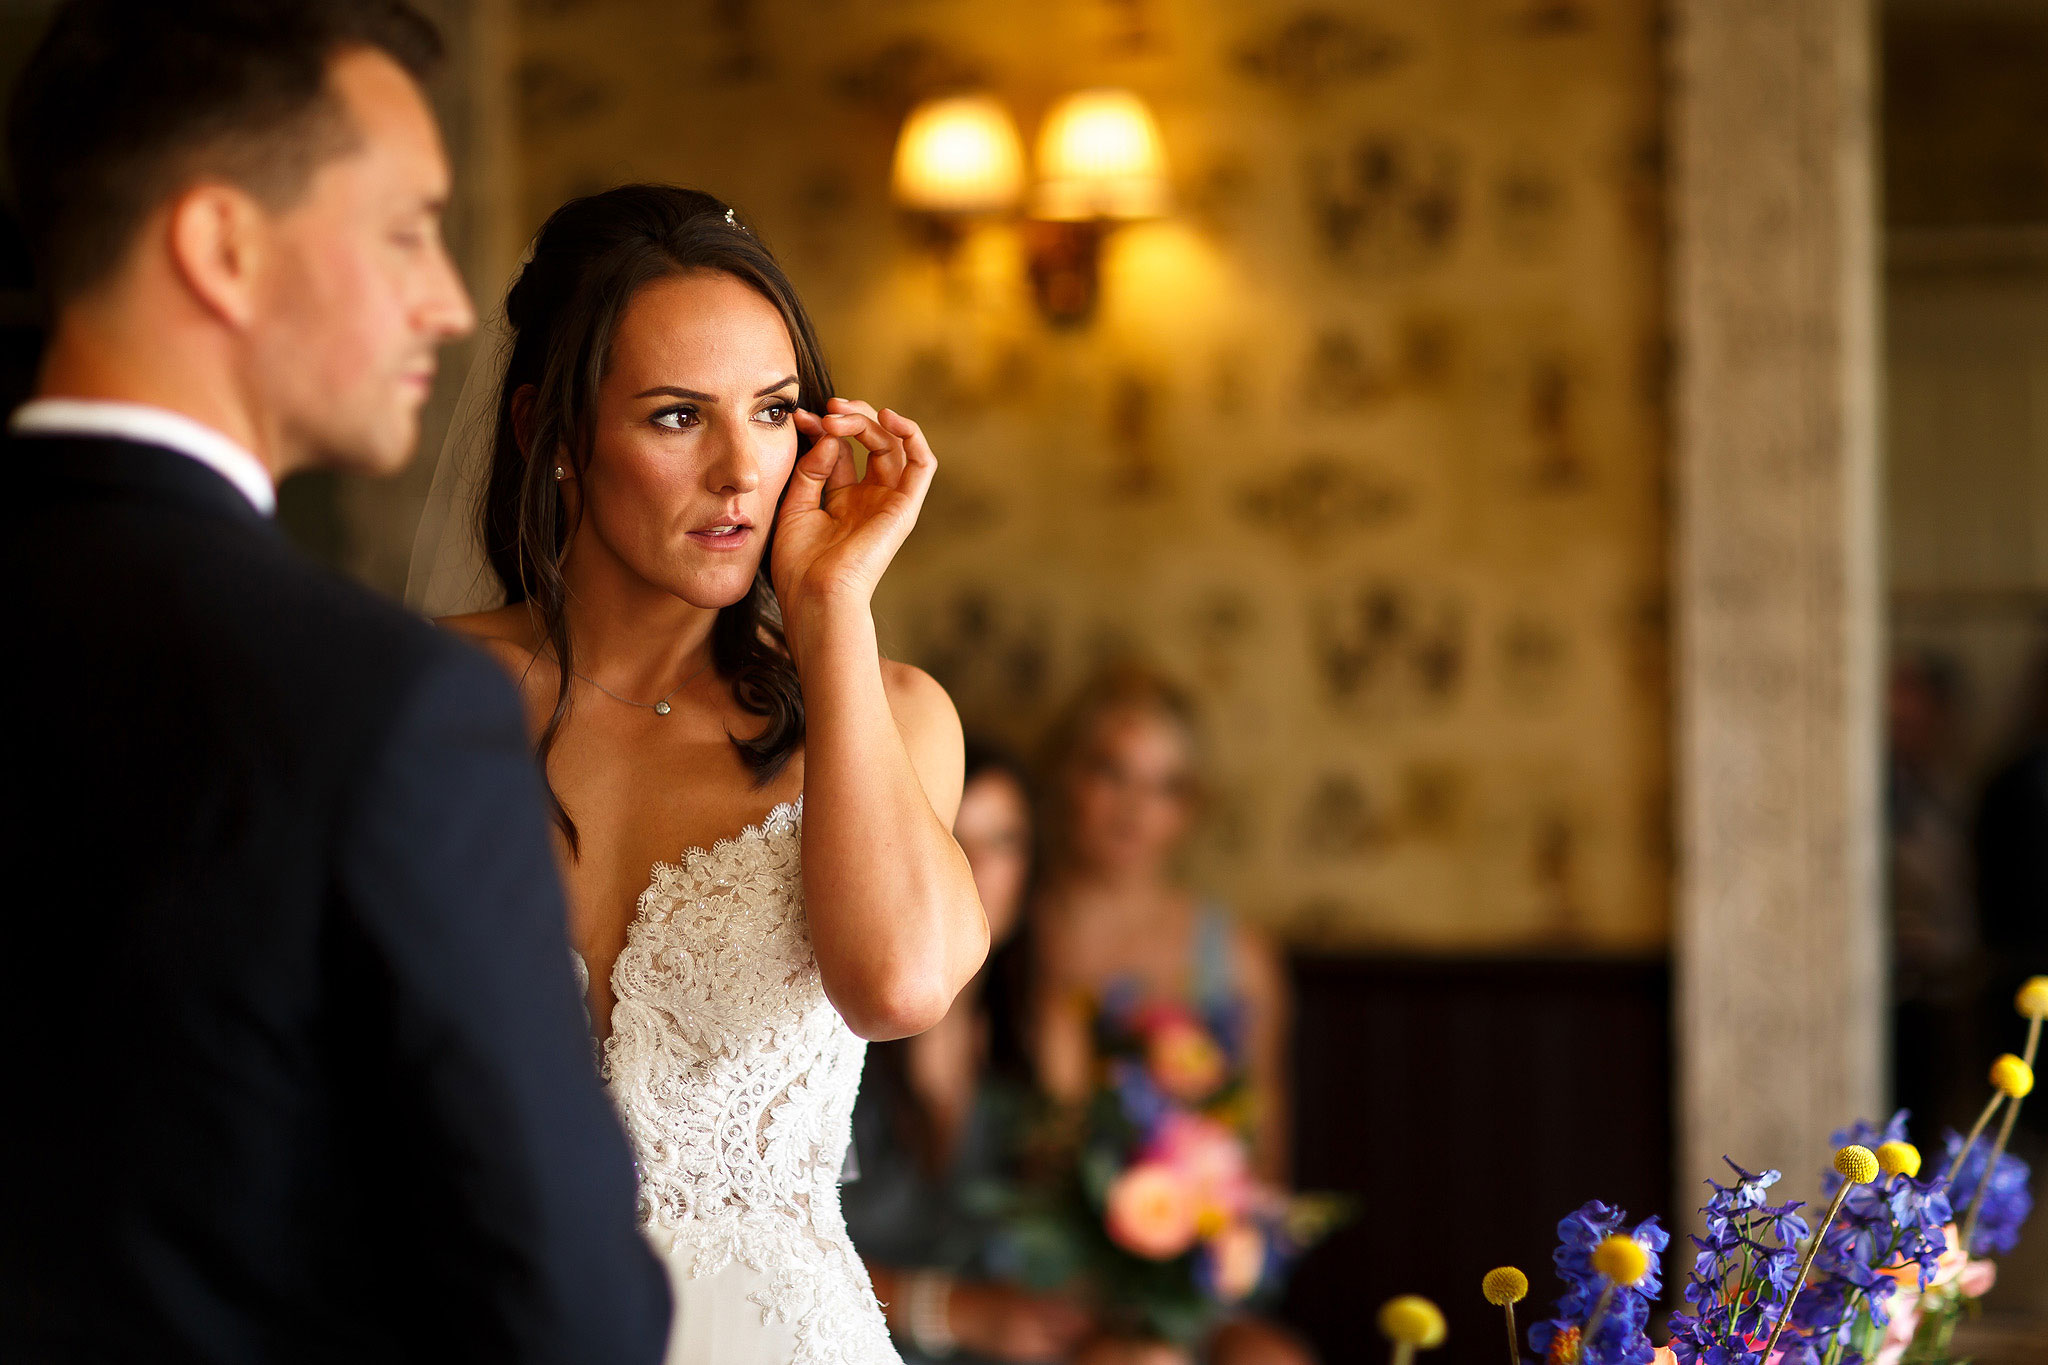 Bride delicately wiping tears during wedding ceremony at the Shireburn Arms